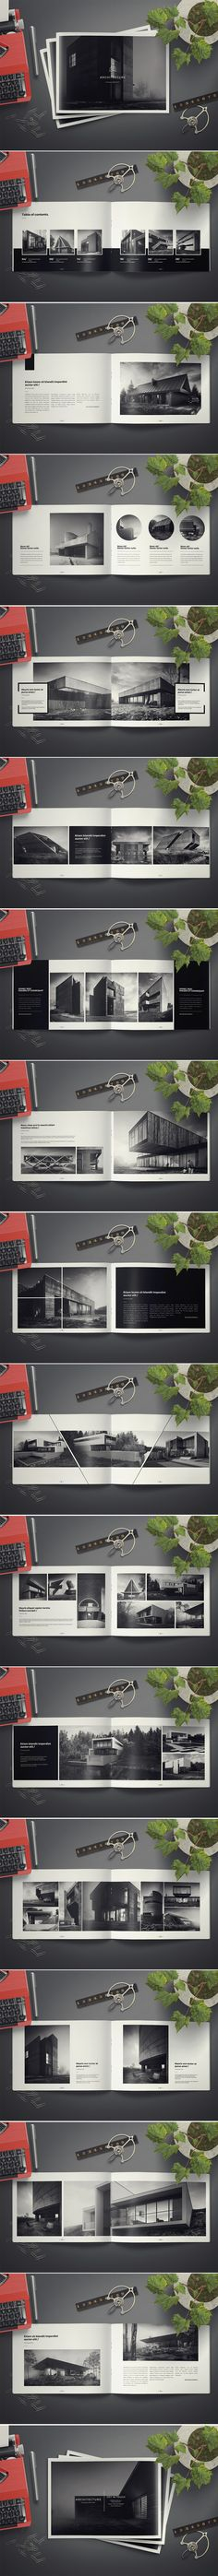 Architecture Landscape Brochure on Behance                              …